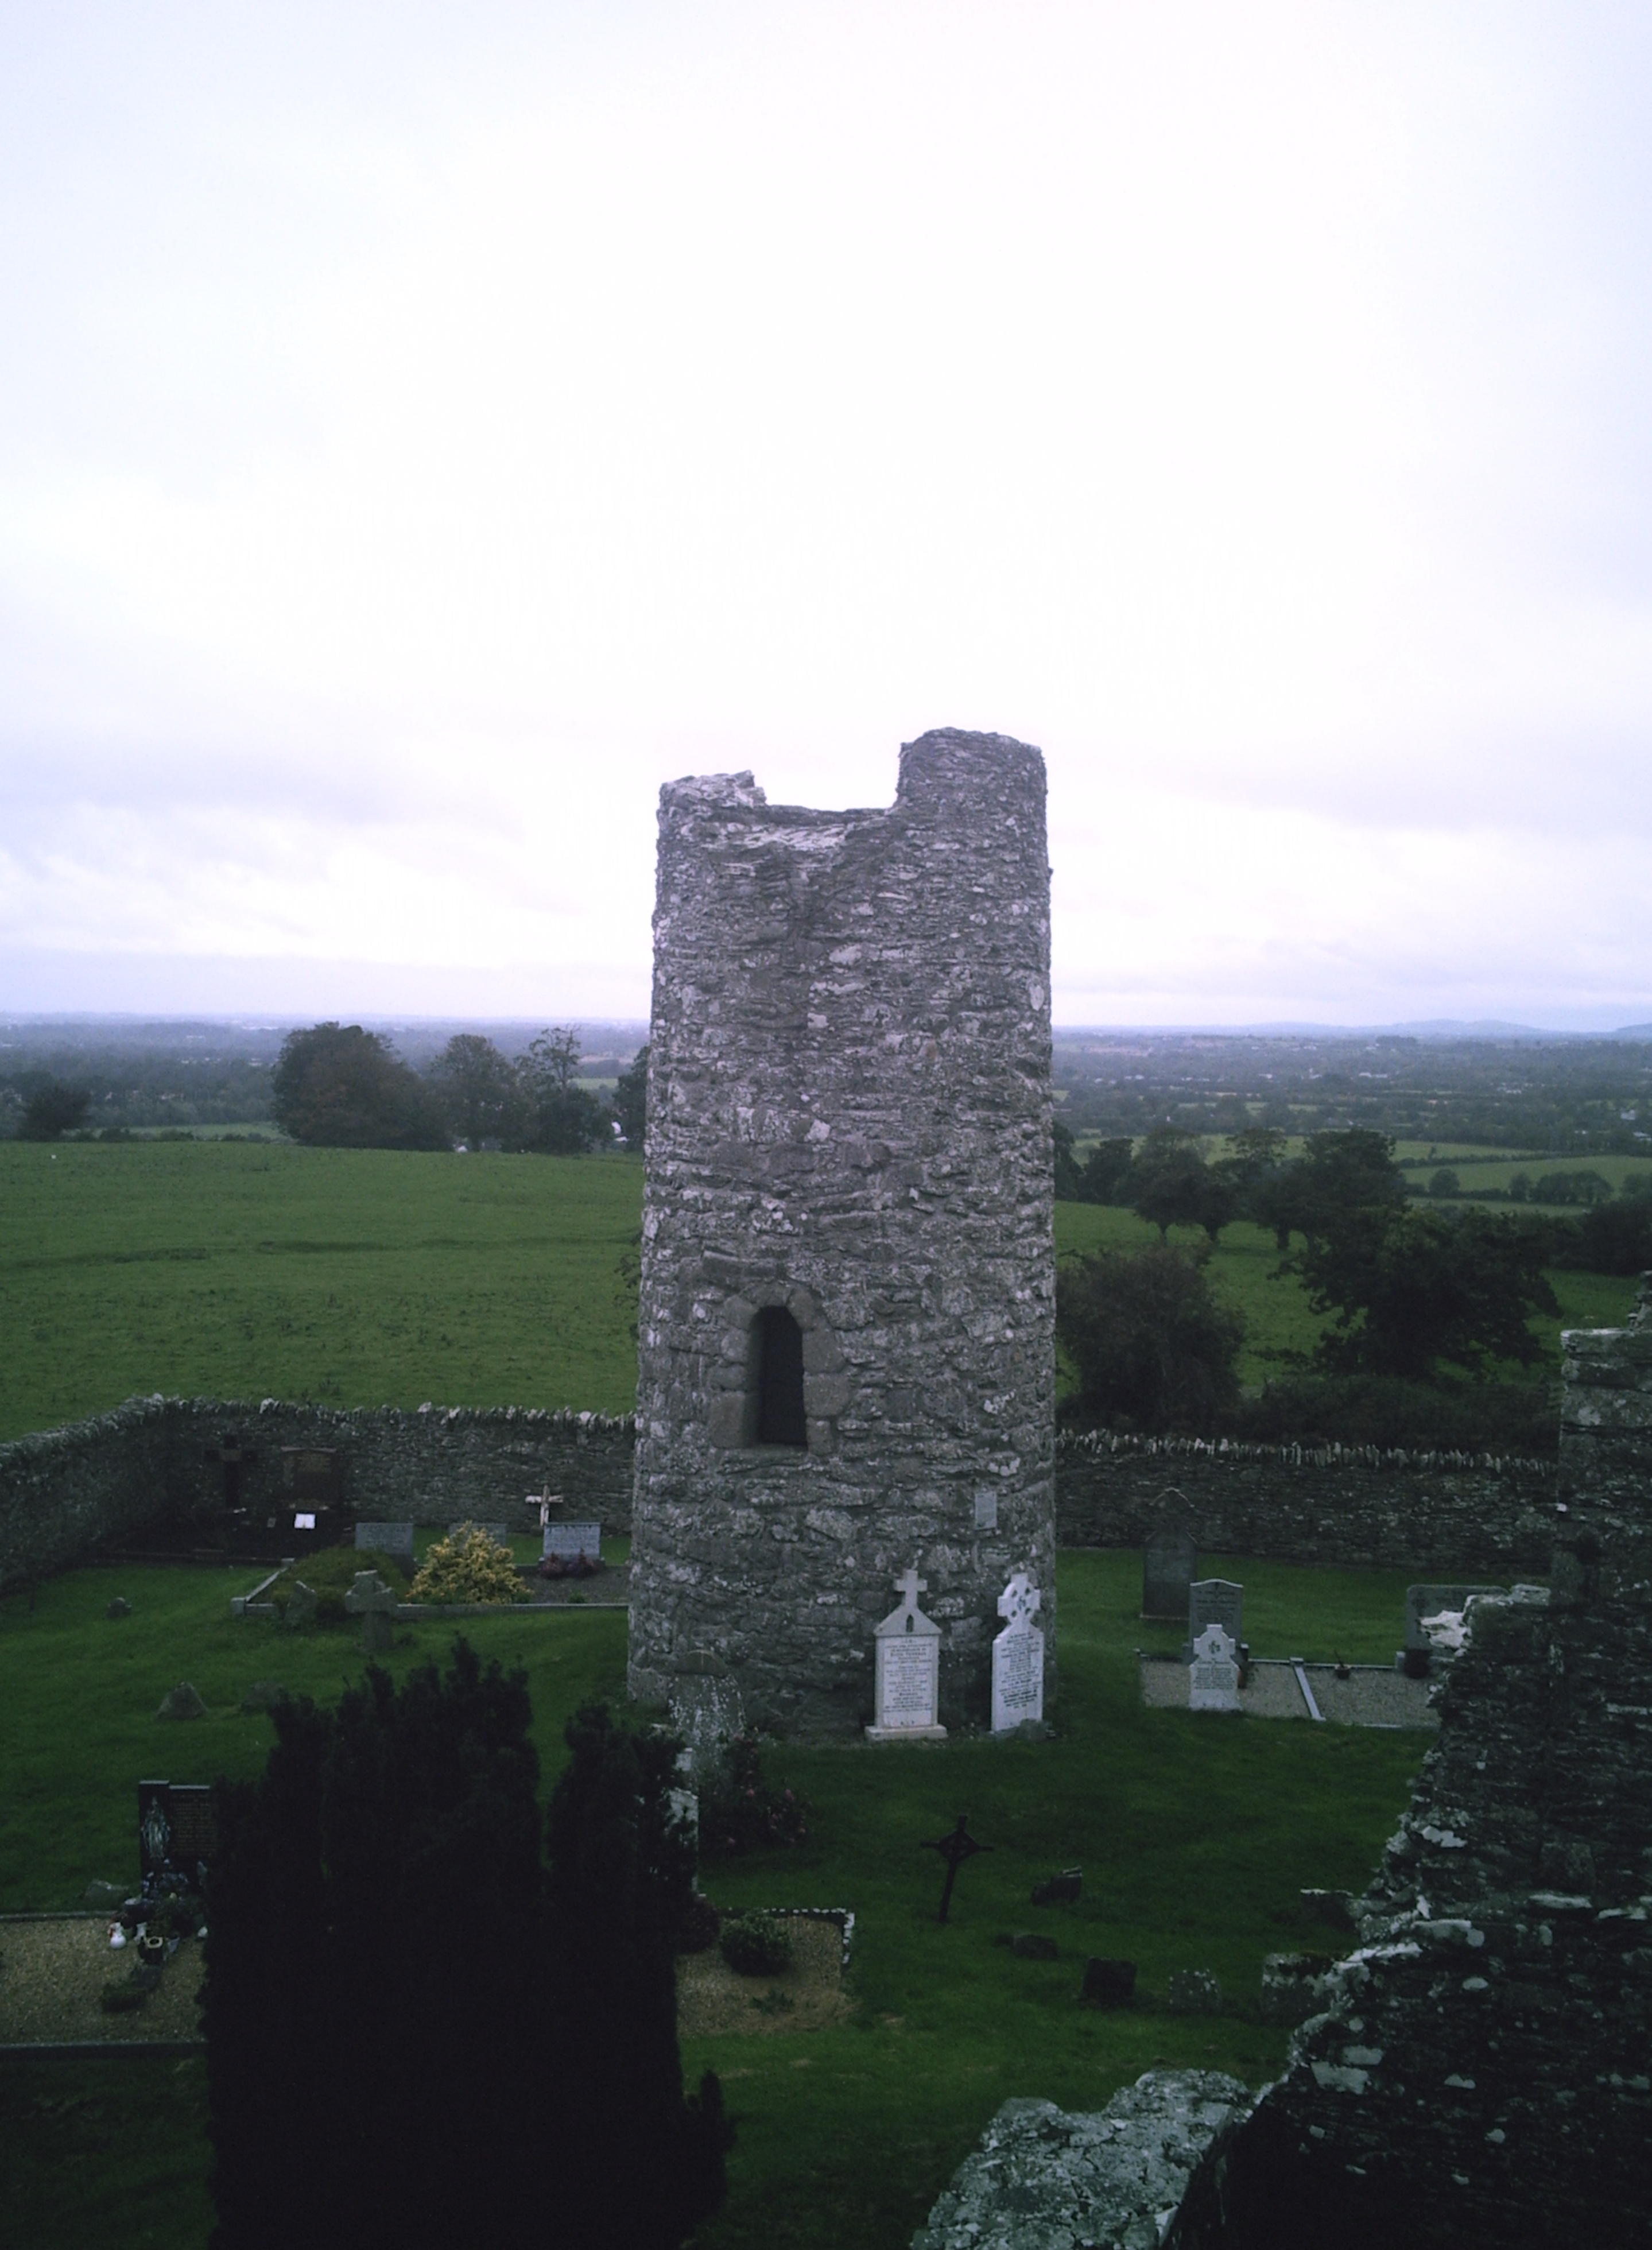 Christian Dating Site for Marriage in Kildare, Ireland